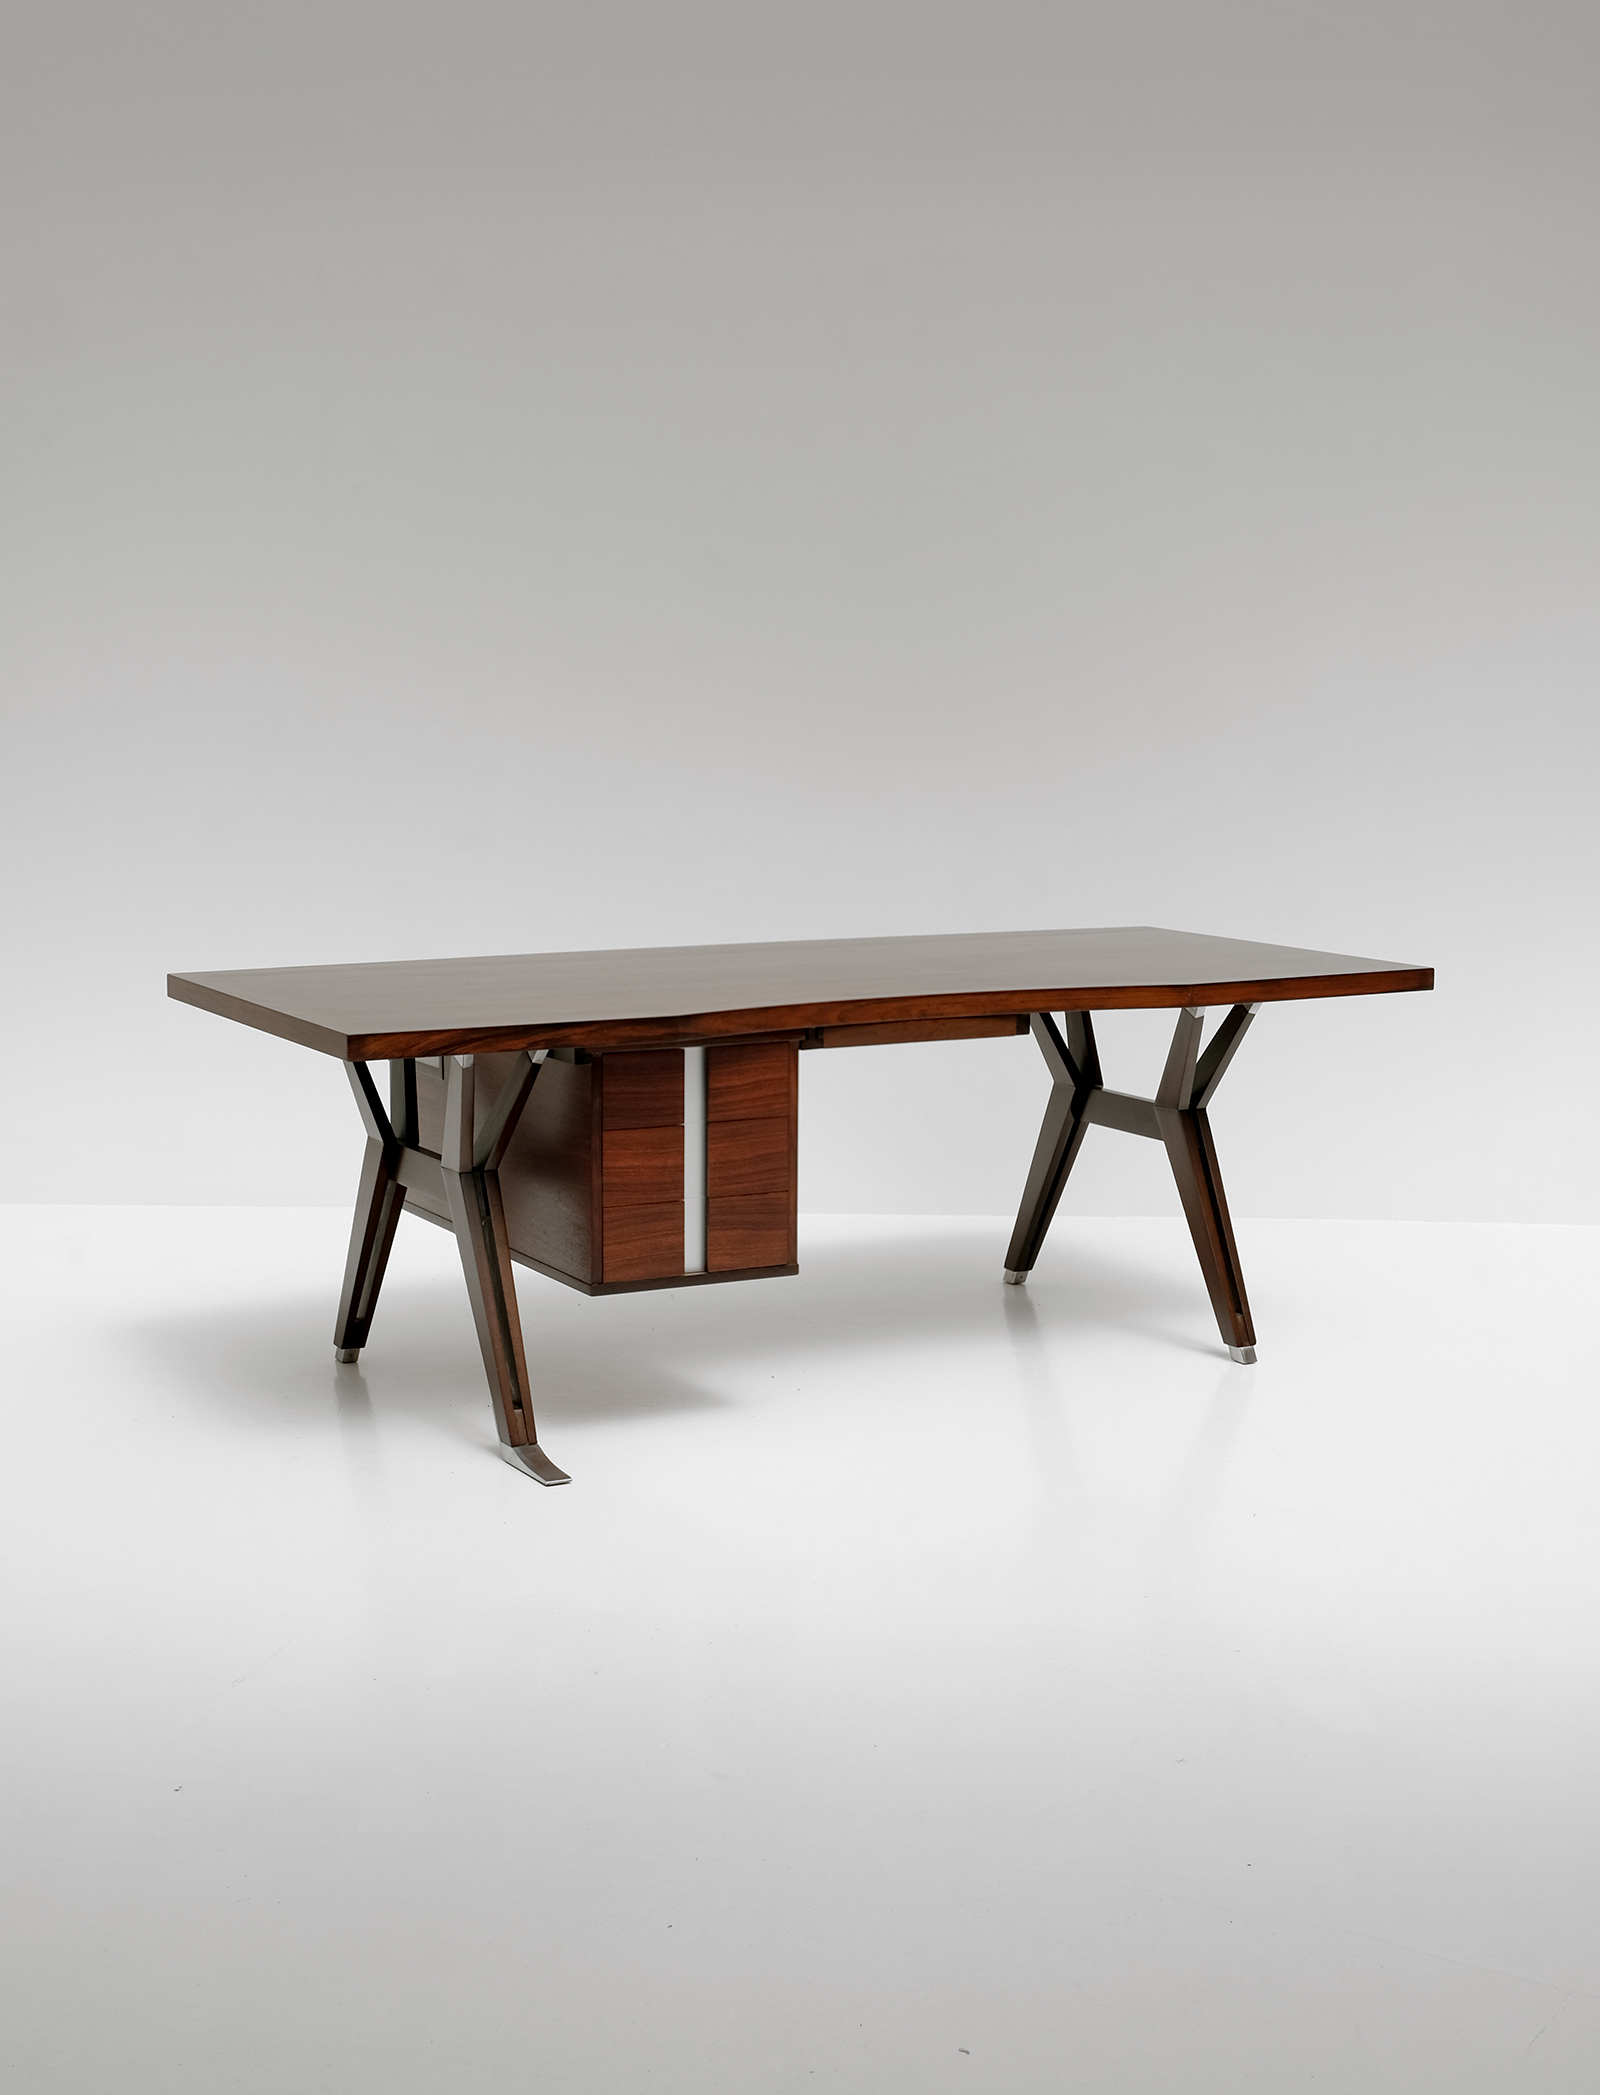 Executive Desk by Ico Parisi for MIM 1958image 1